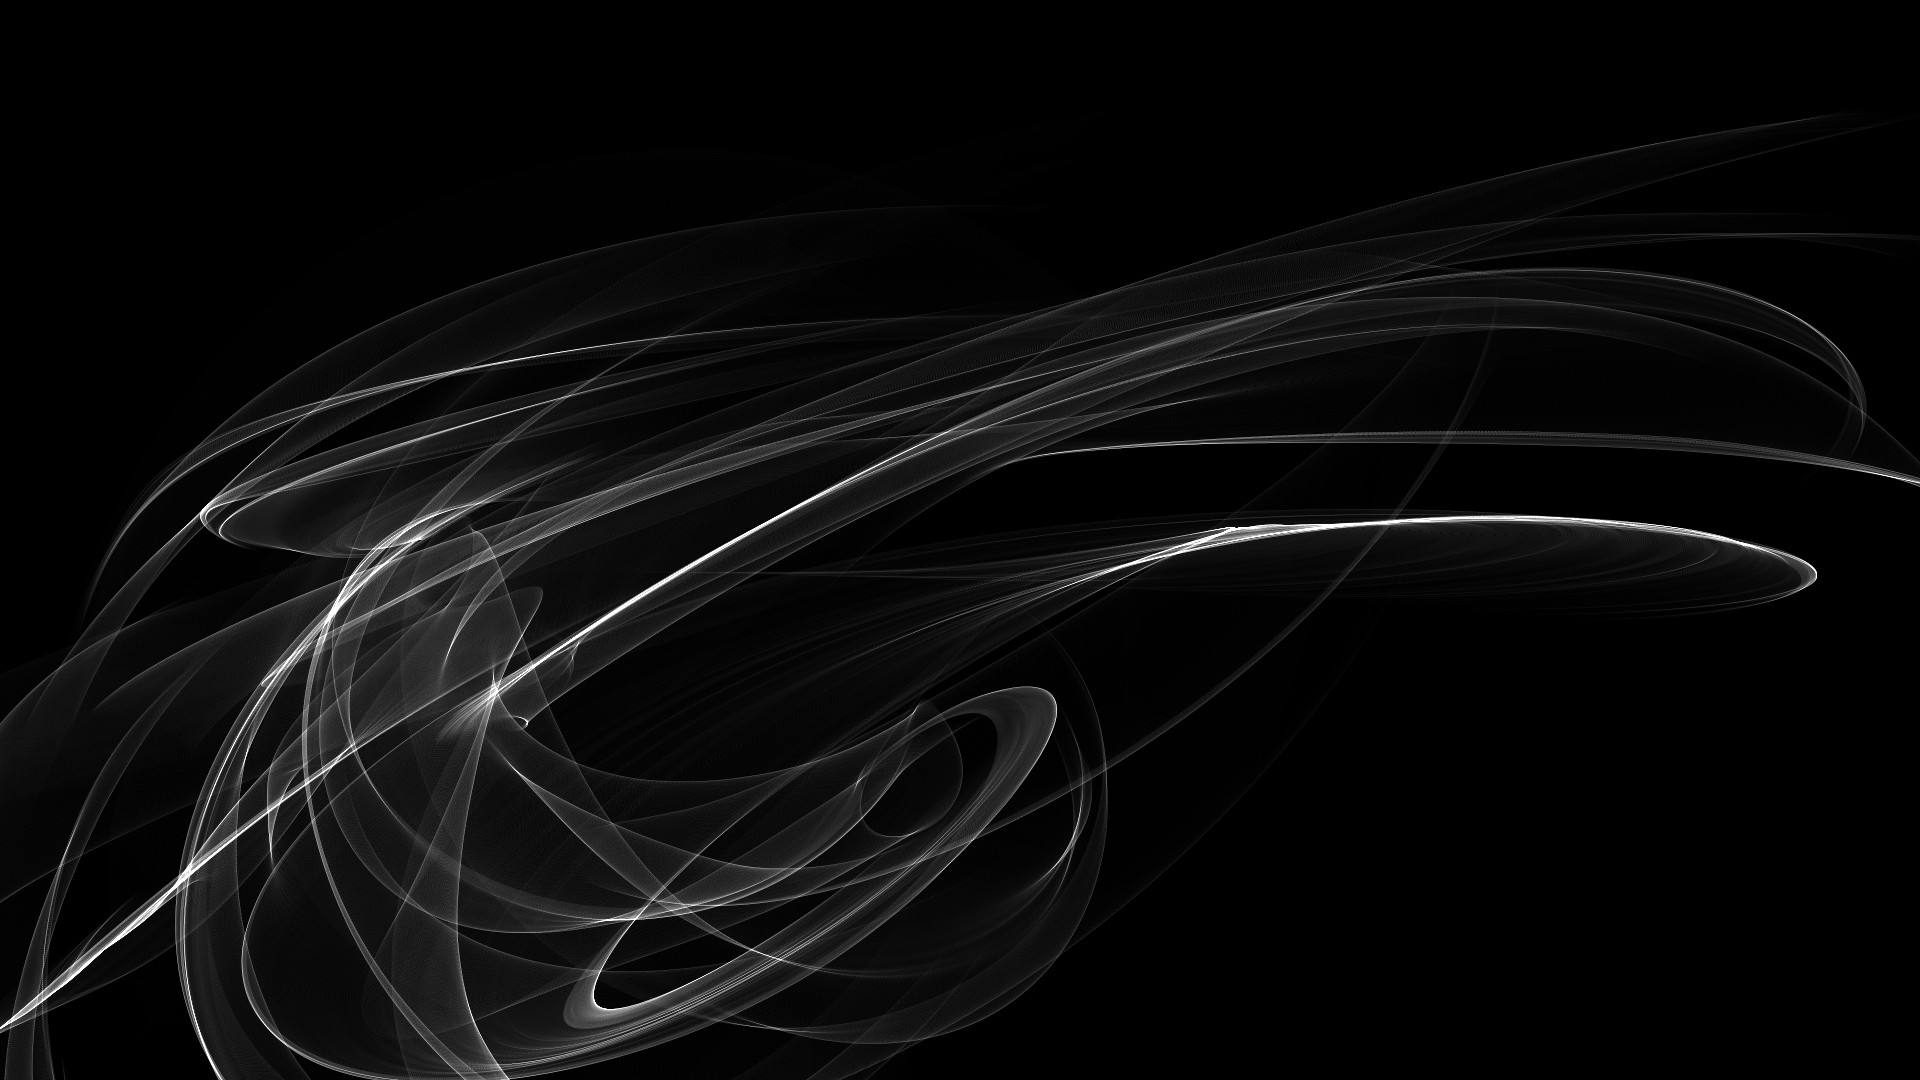 Black abstract background download free cool full hd - Black wallpaper download ...